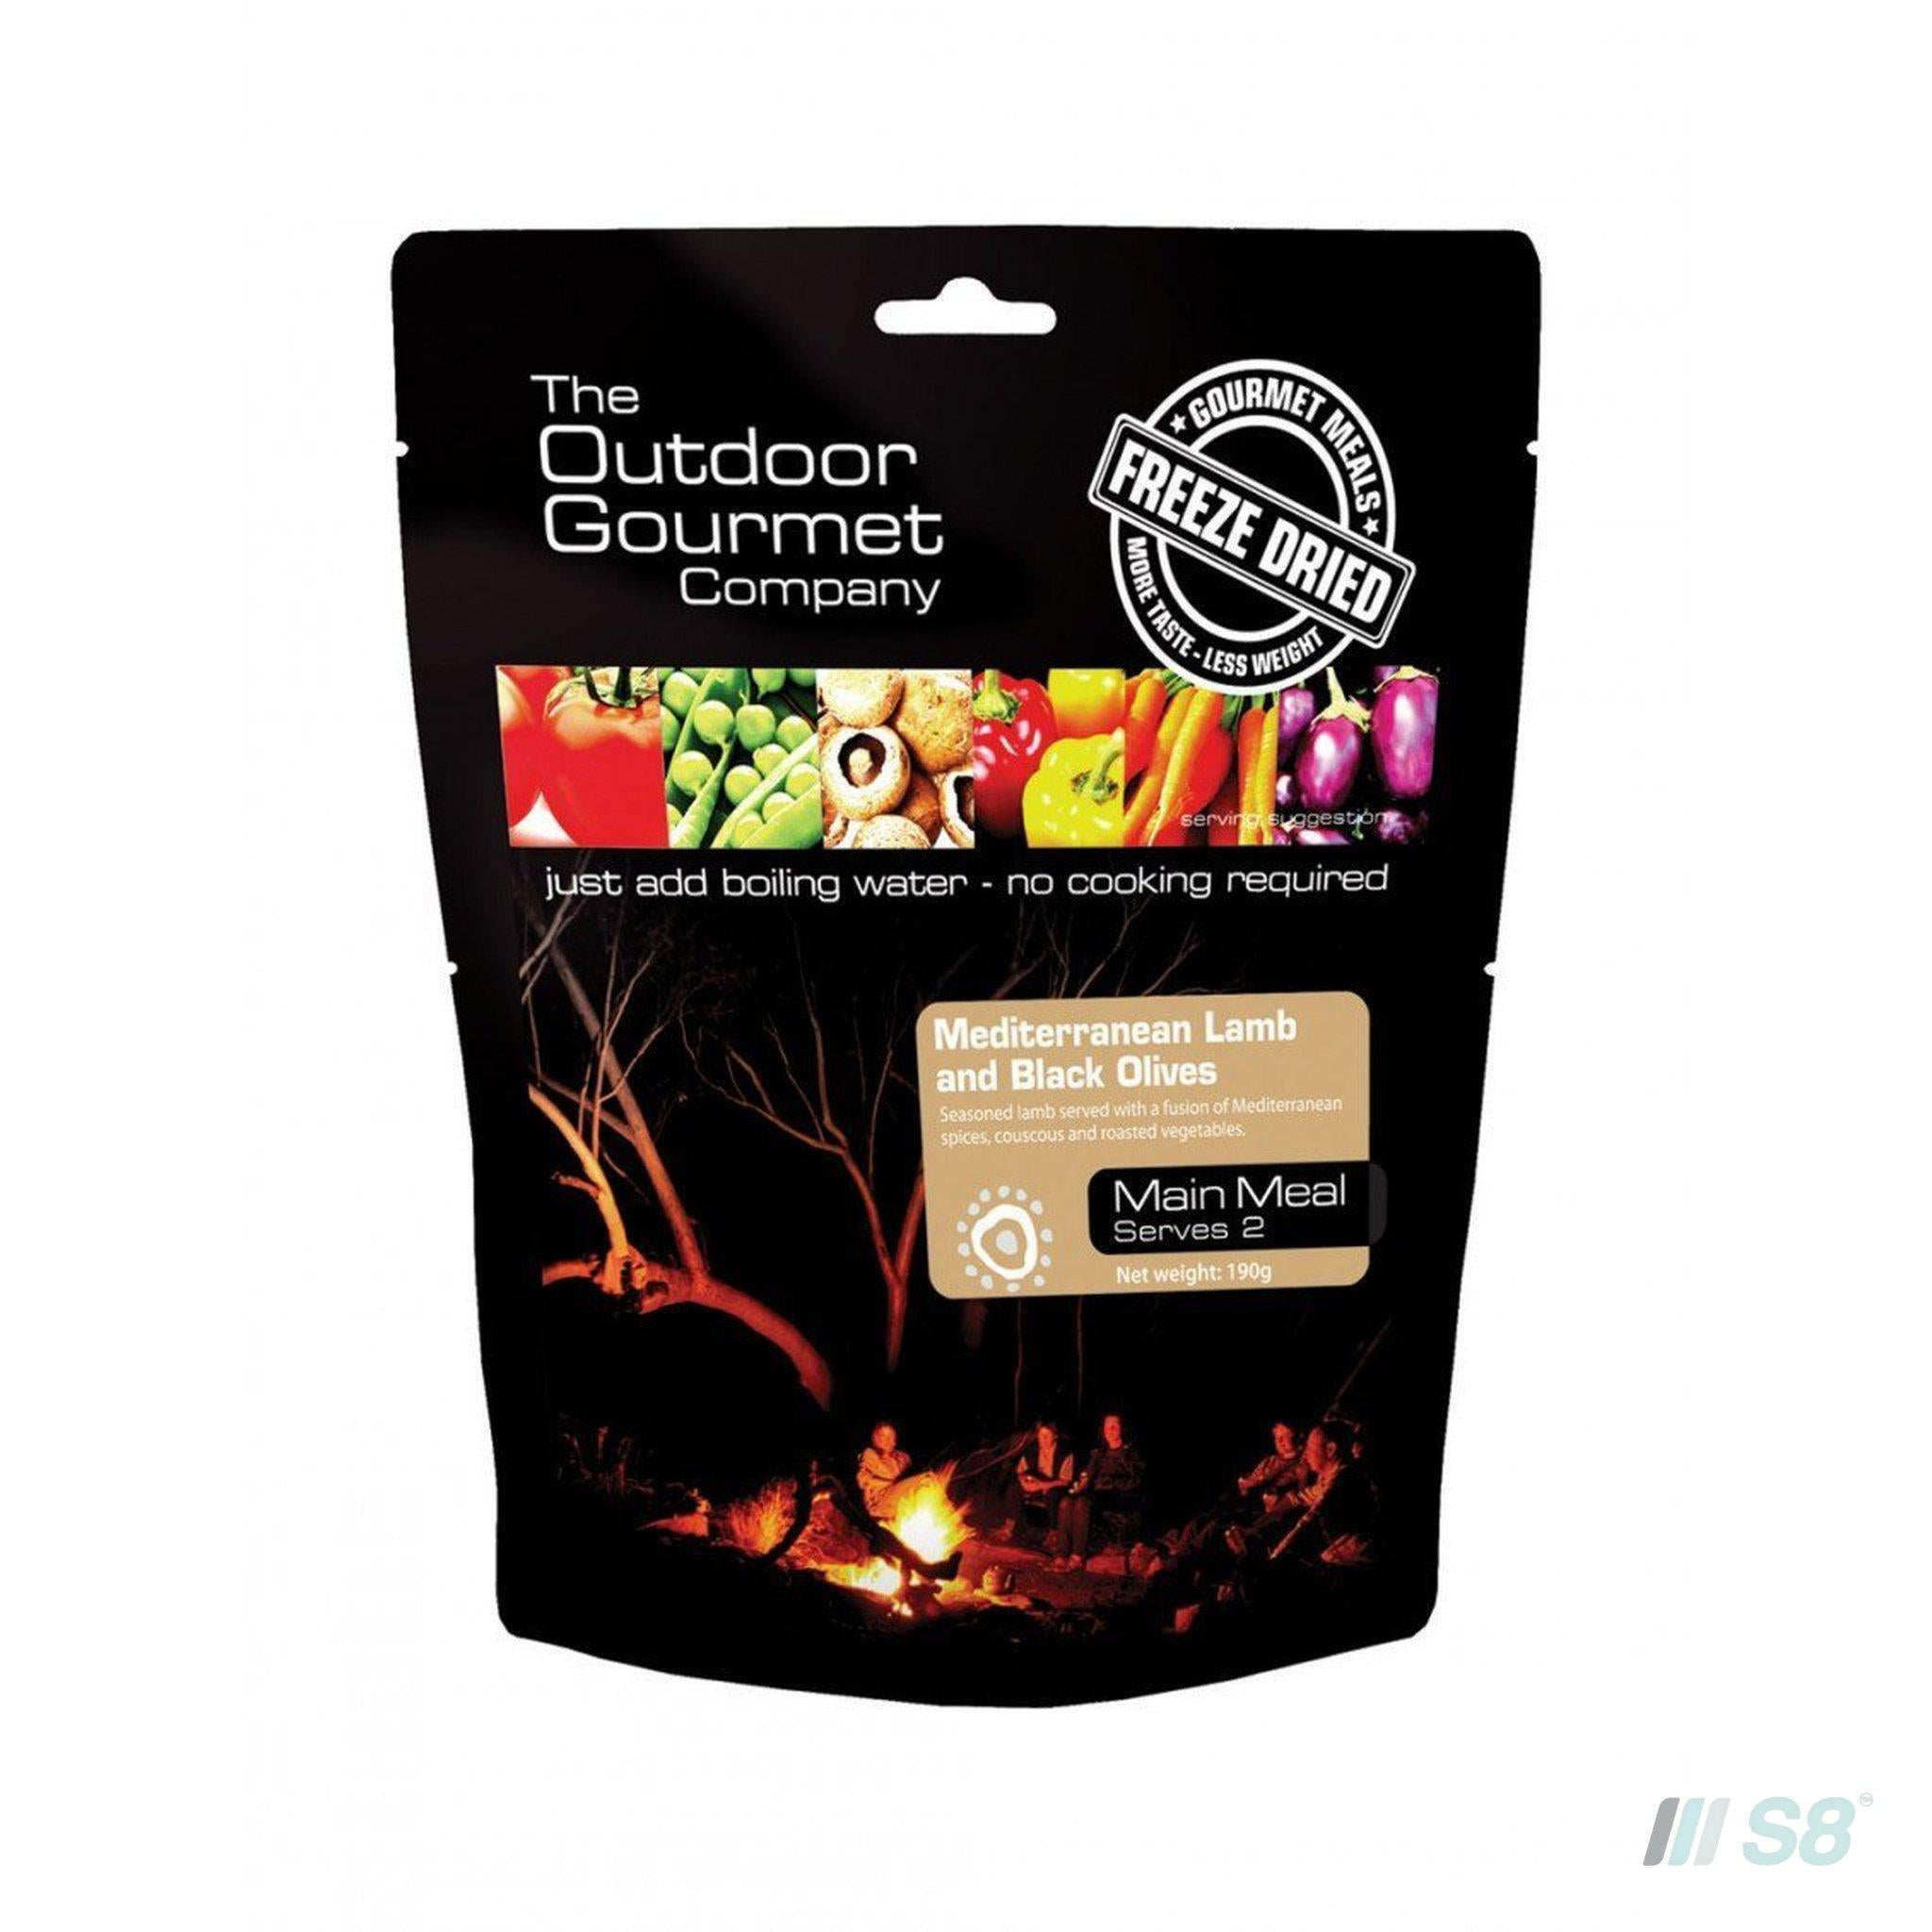 OGC MEDITERANEAN LAMB WITH BLACK OLIVES-Outdoor Gourmet Company-S8 Products Group